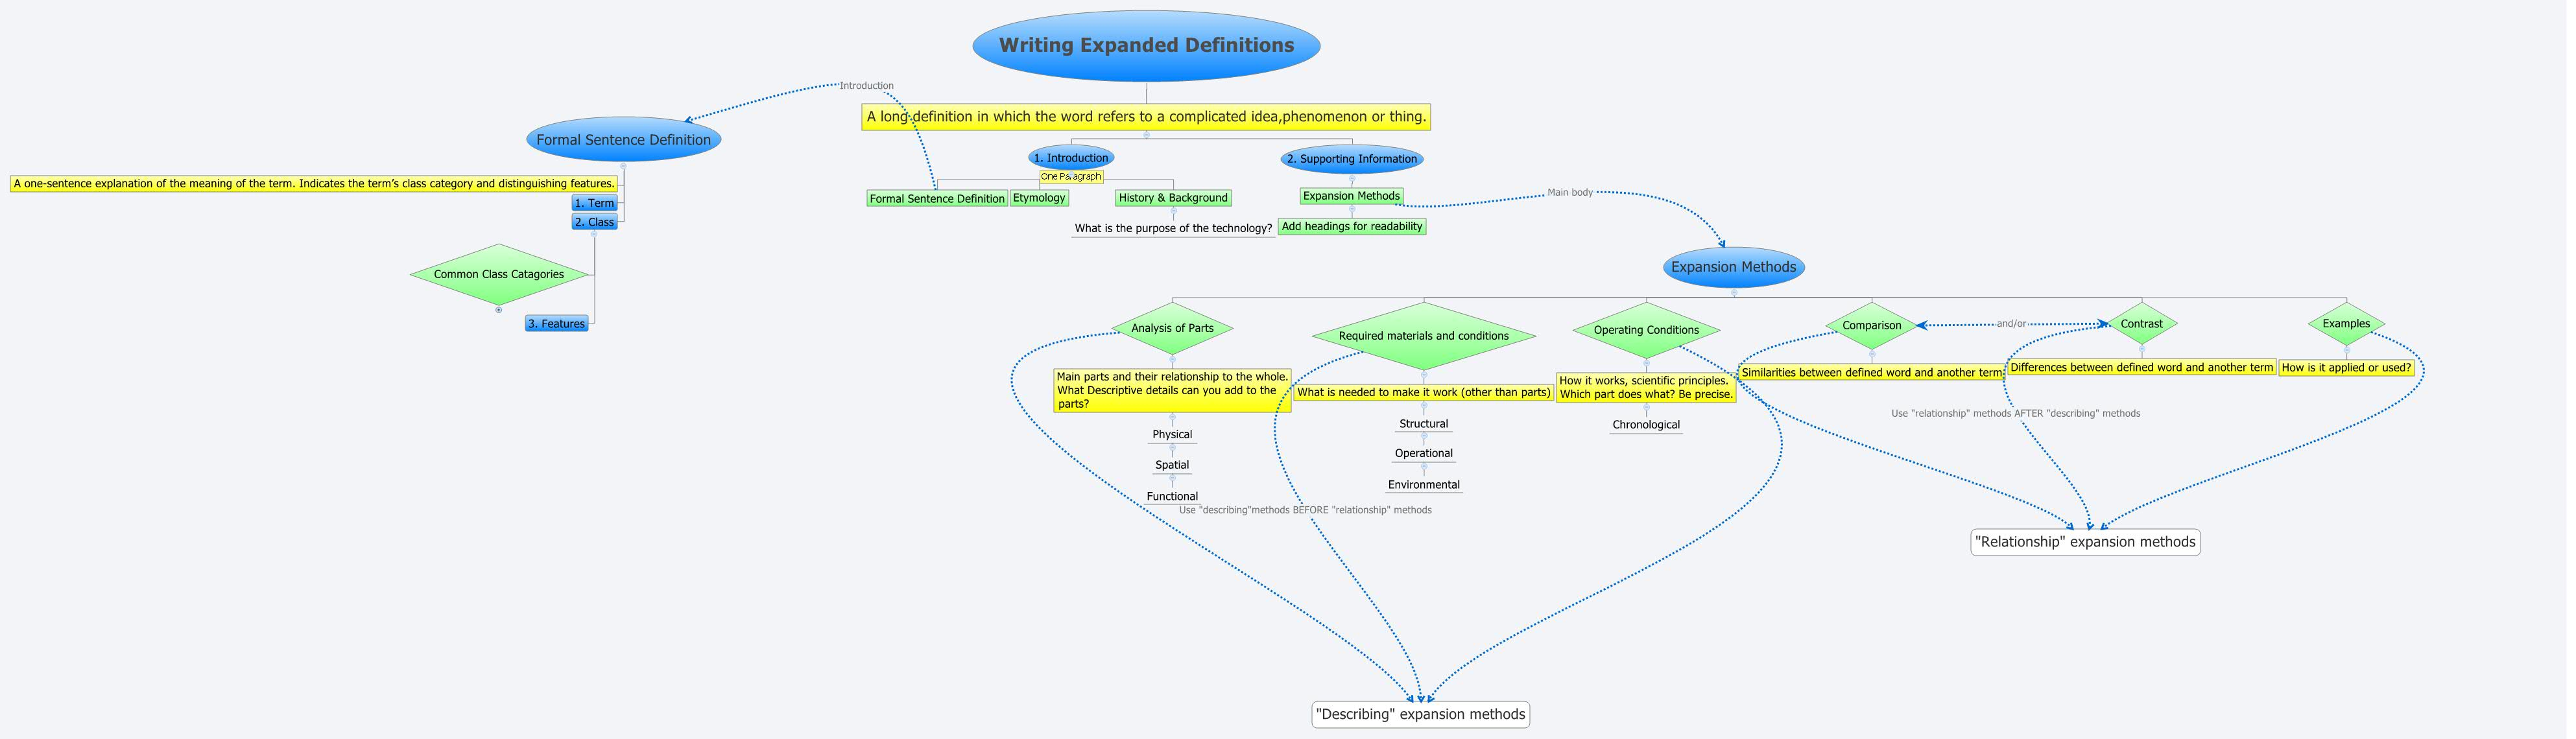 Writing Expanded Definitions Xmind Mind Mapping Software